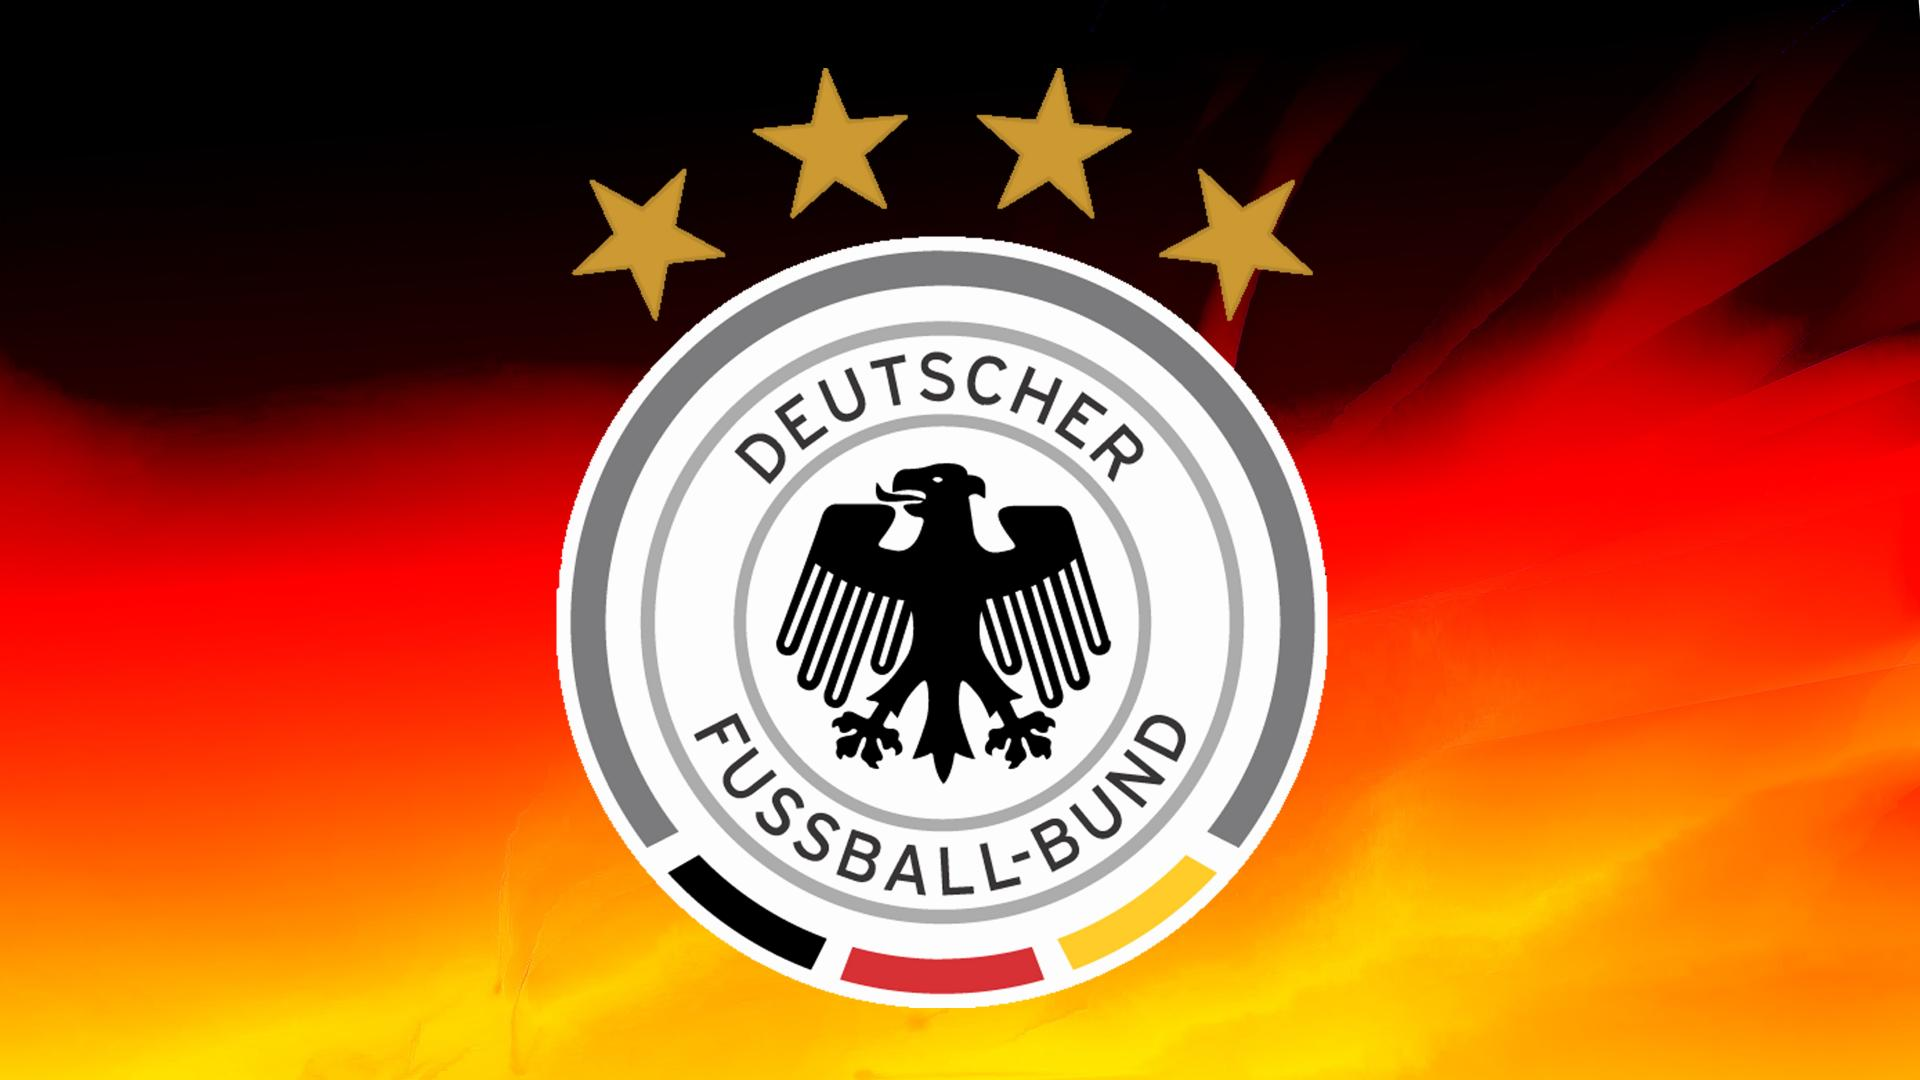 fussball germany